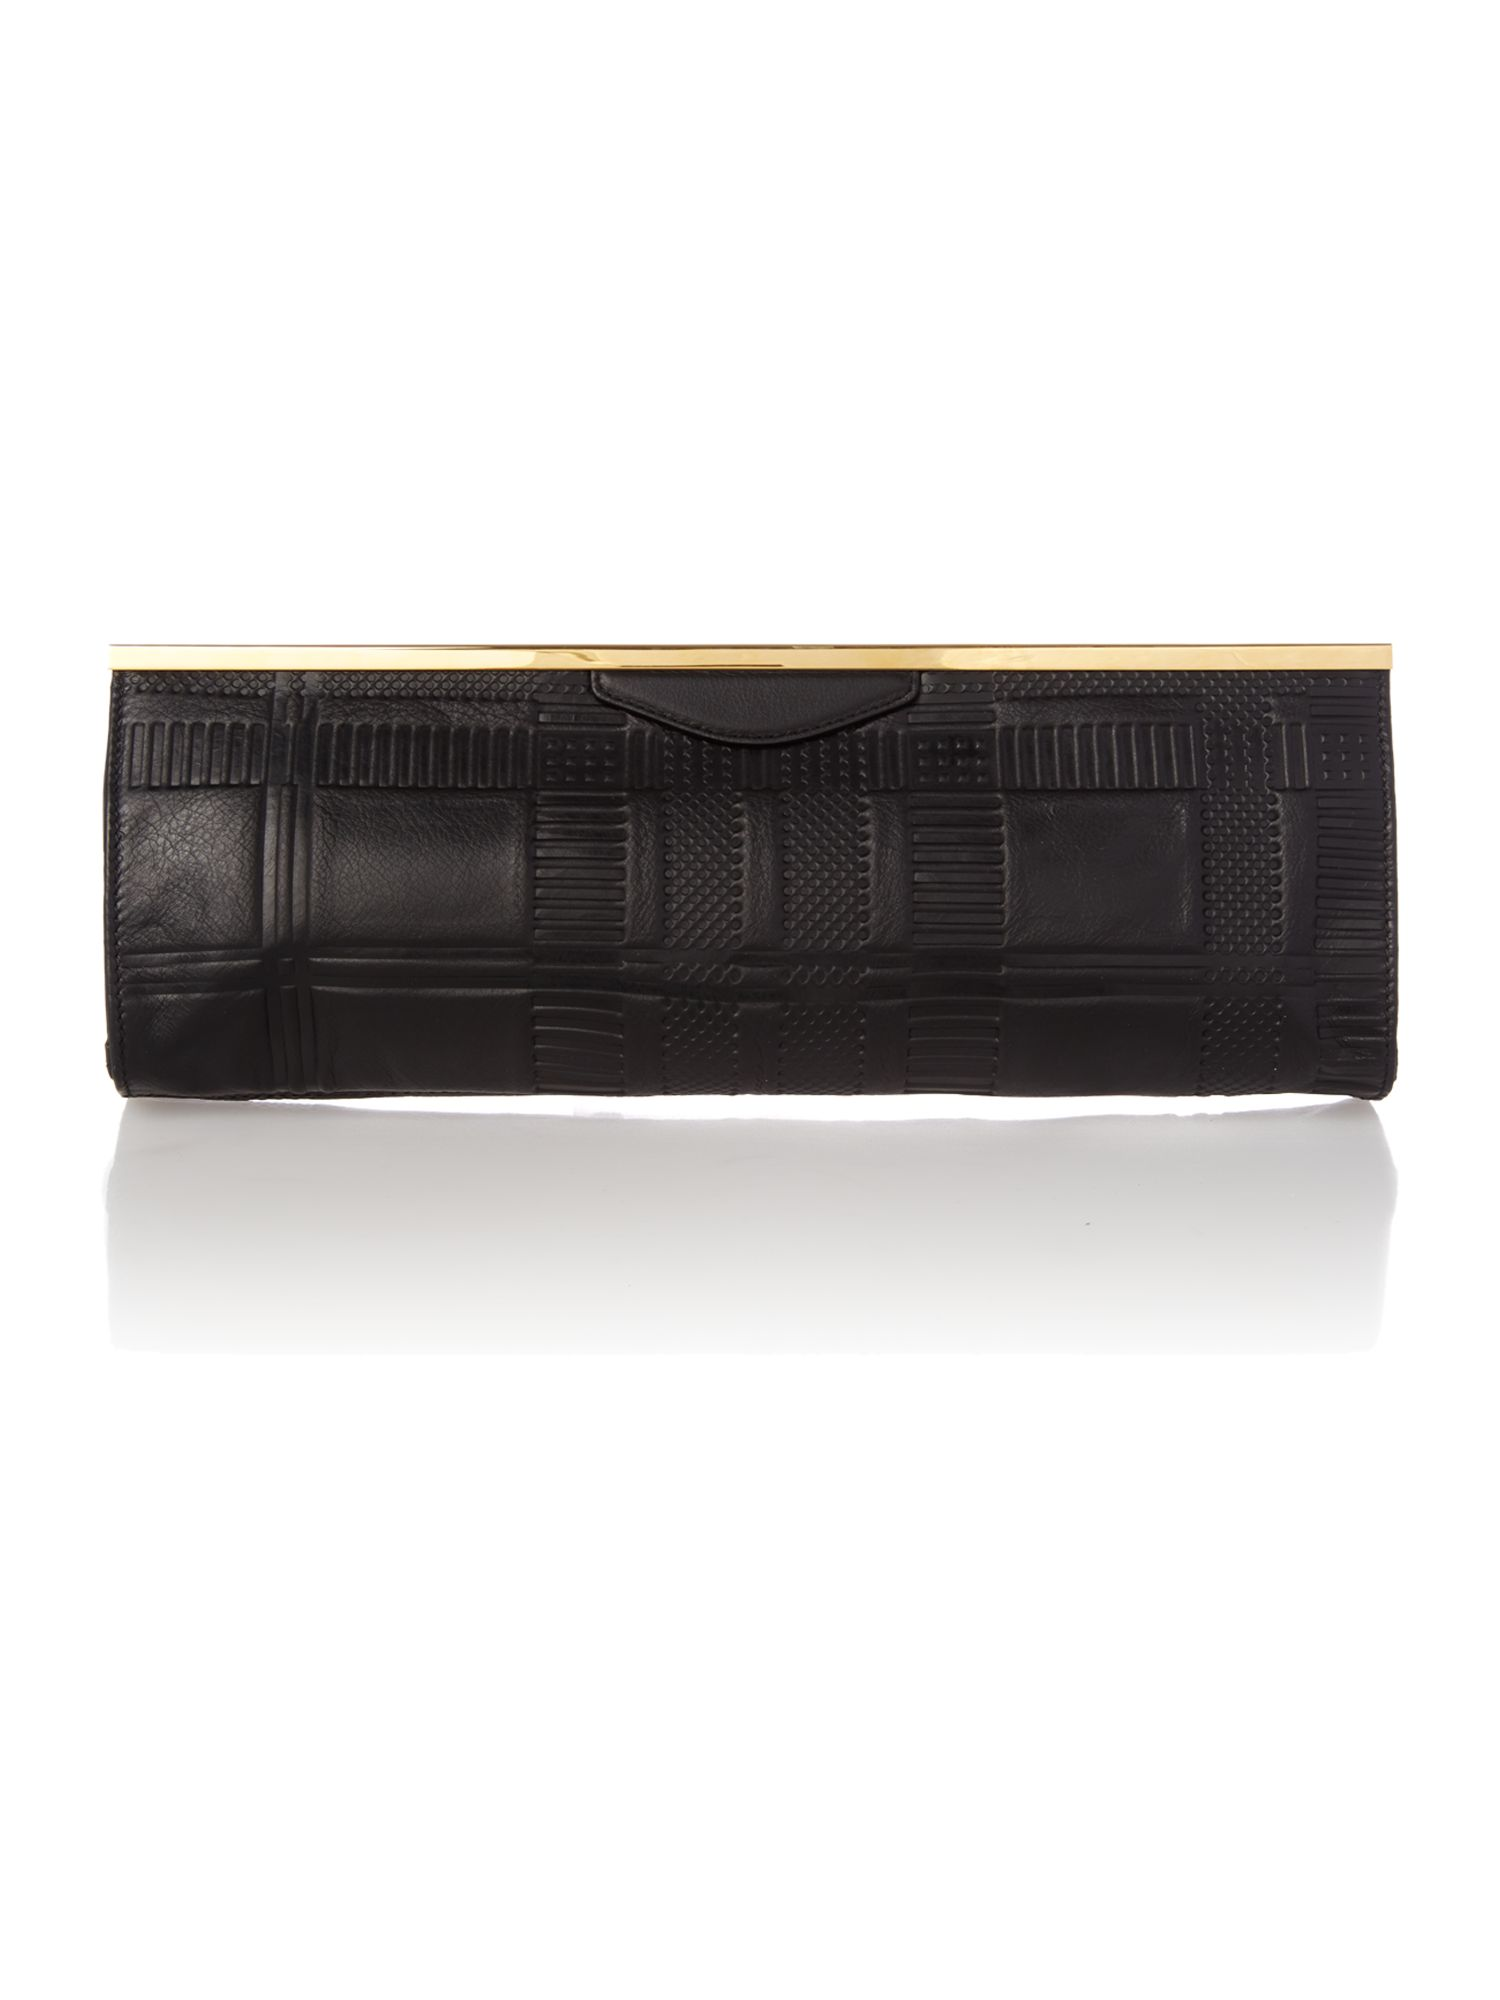 Embossed Tartan black clutch bag